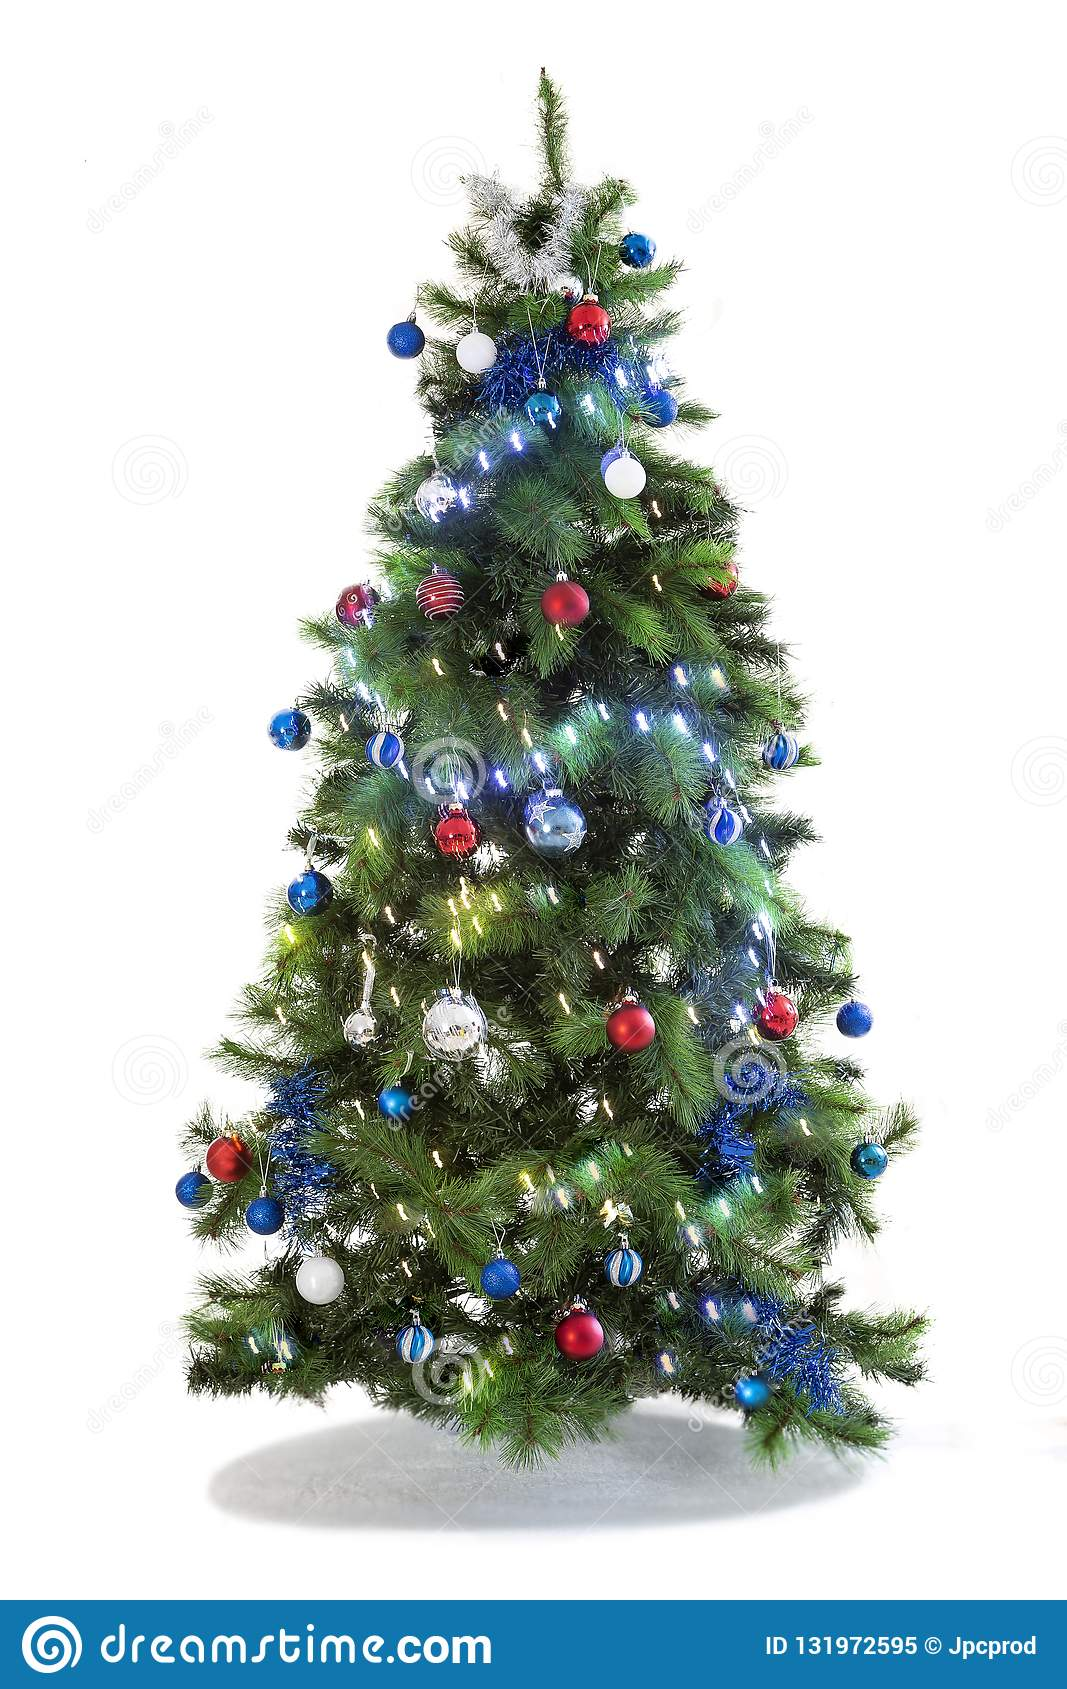 Festive Christmas tree decorated ,Beautiful new year background, isolated on white